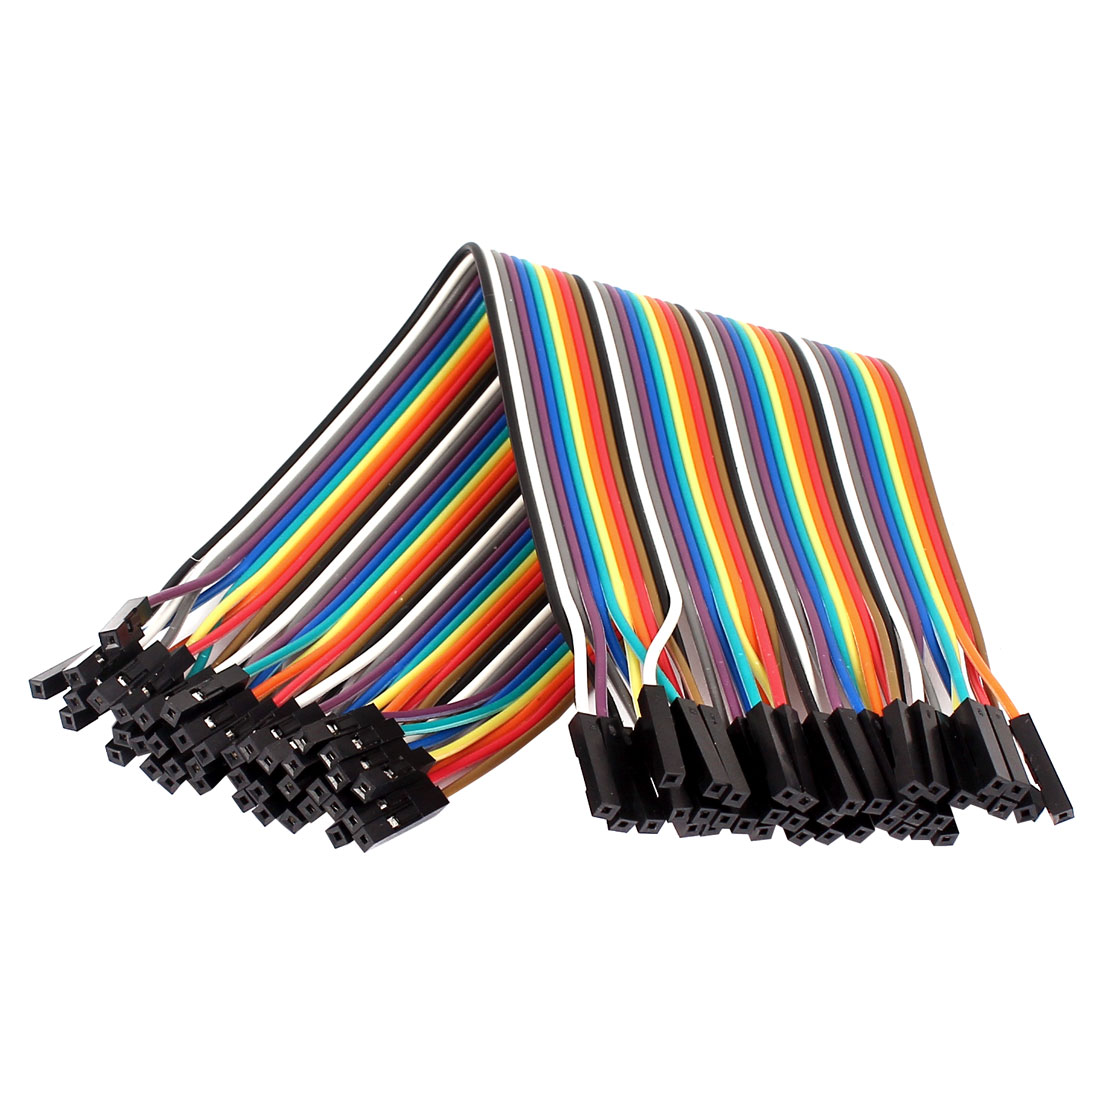 2.54mm Pitch 40 Pin 40 Way F/F Connector Rainbow Ribbon Jumper Cable Wires 20cm